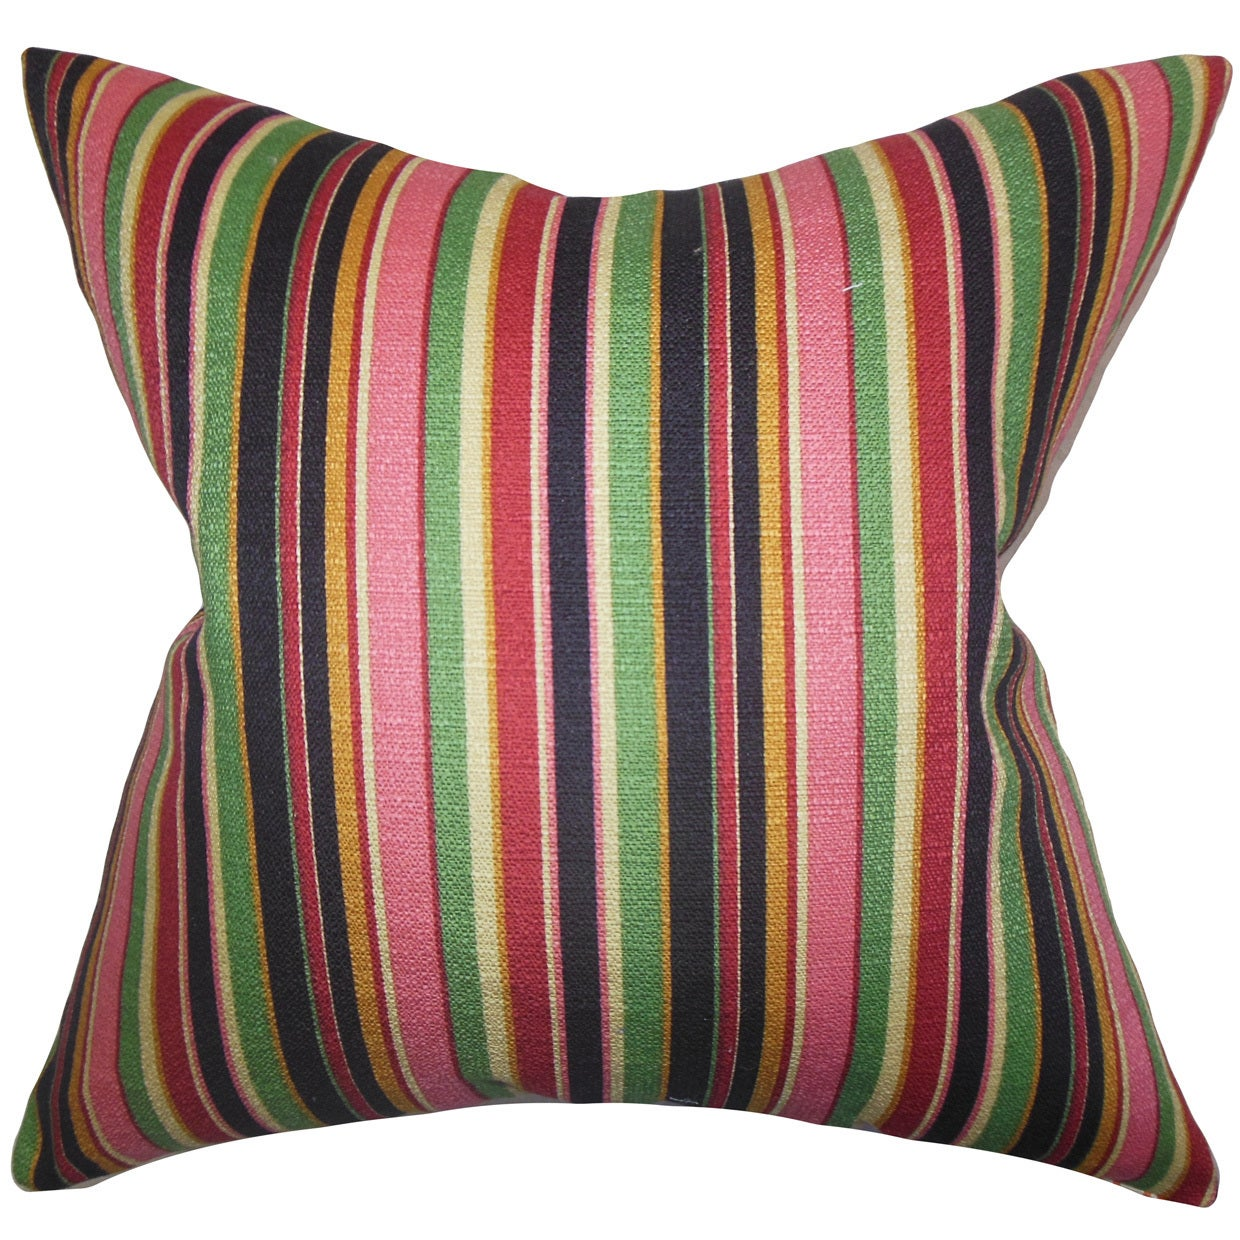 Tait Stripes 24-inch Down Feather Throw Pillow Pink (24 x 24)